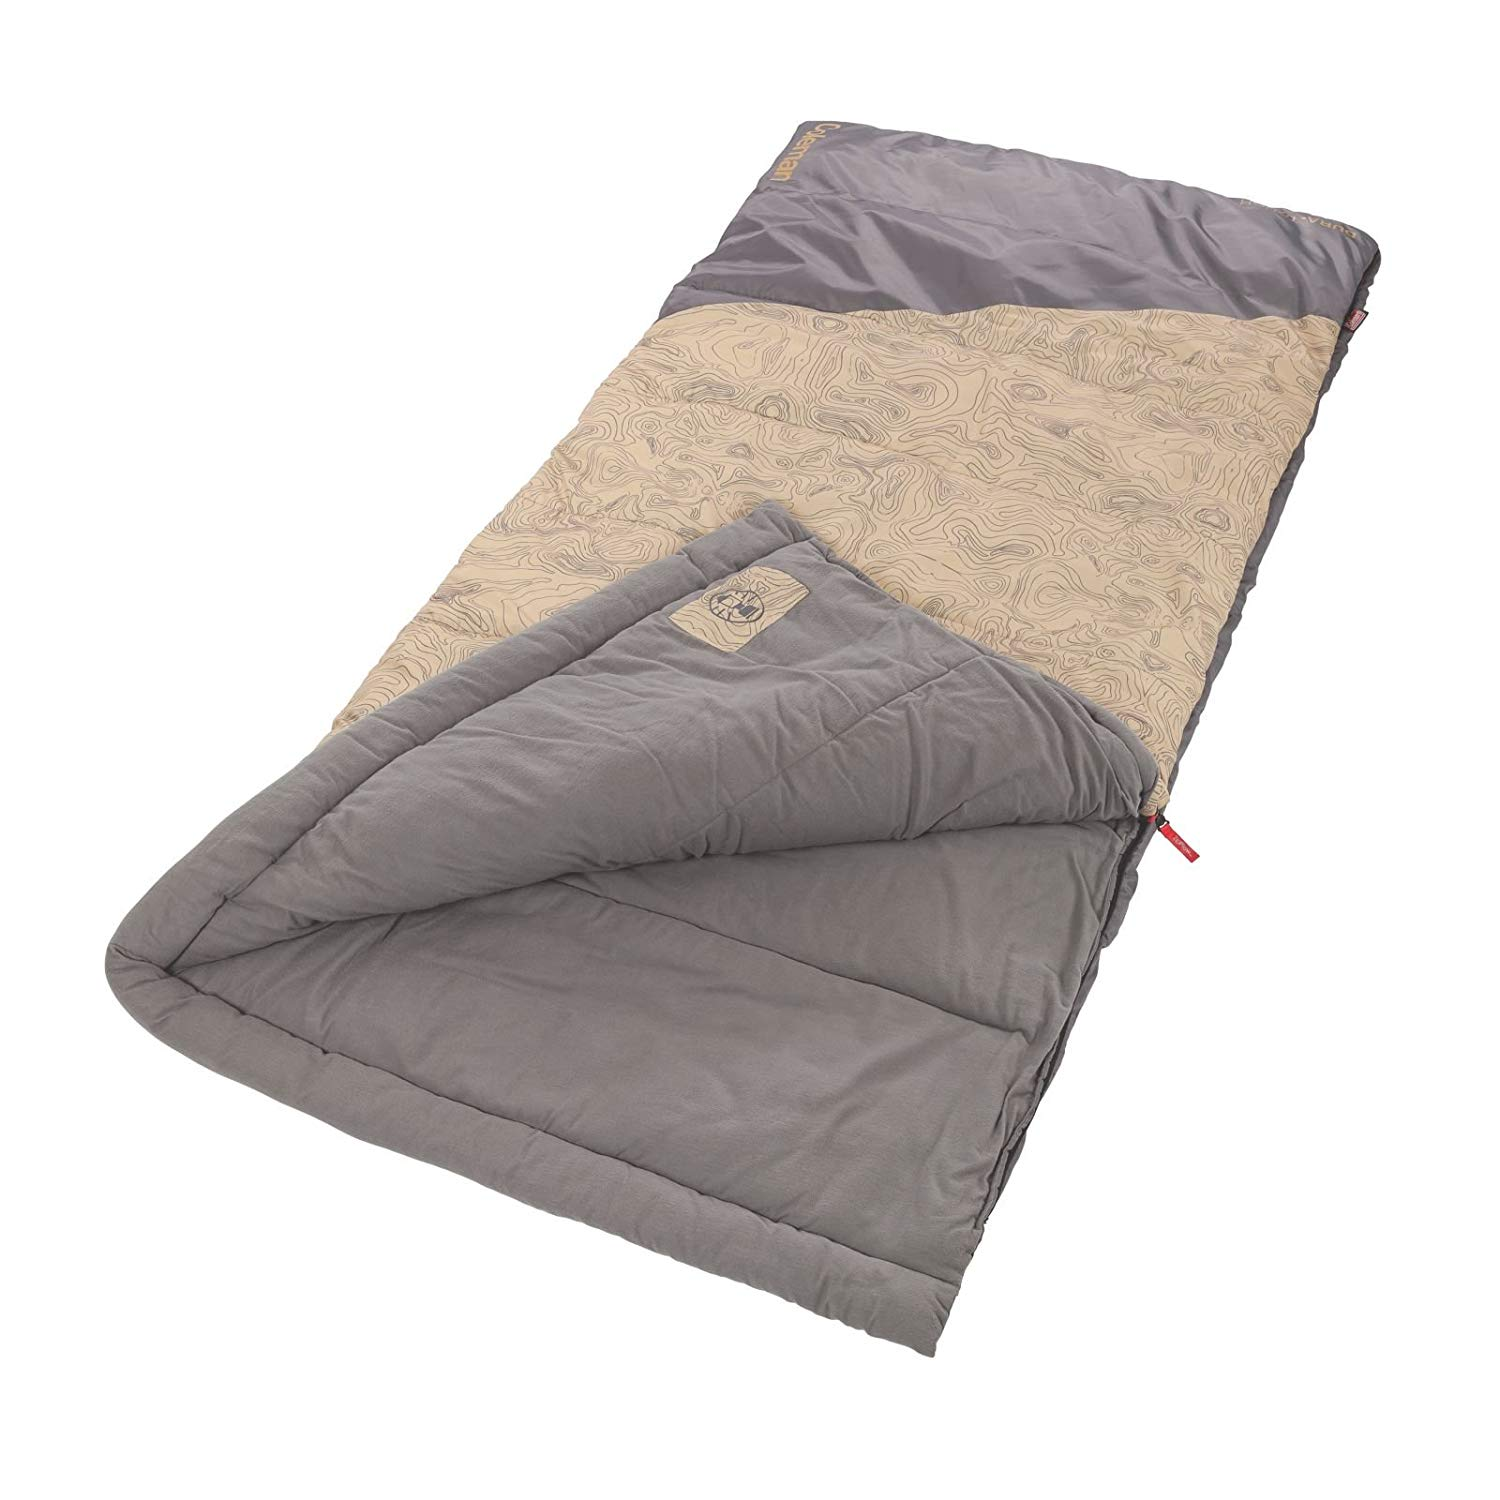 An image related to Coleman Big-N-Tall 2000025731 30 Degree Polyester Sleeping Bag